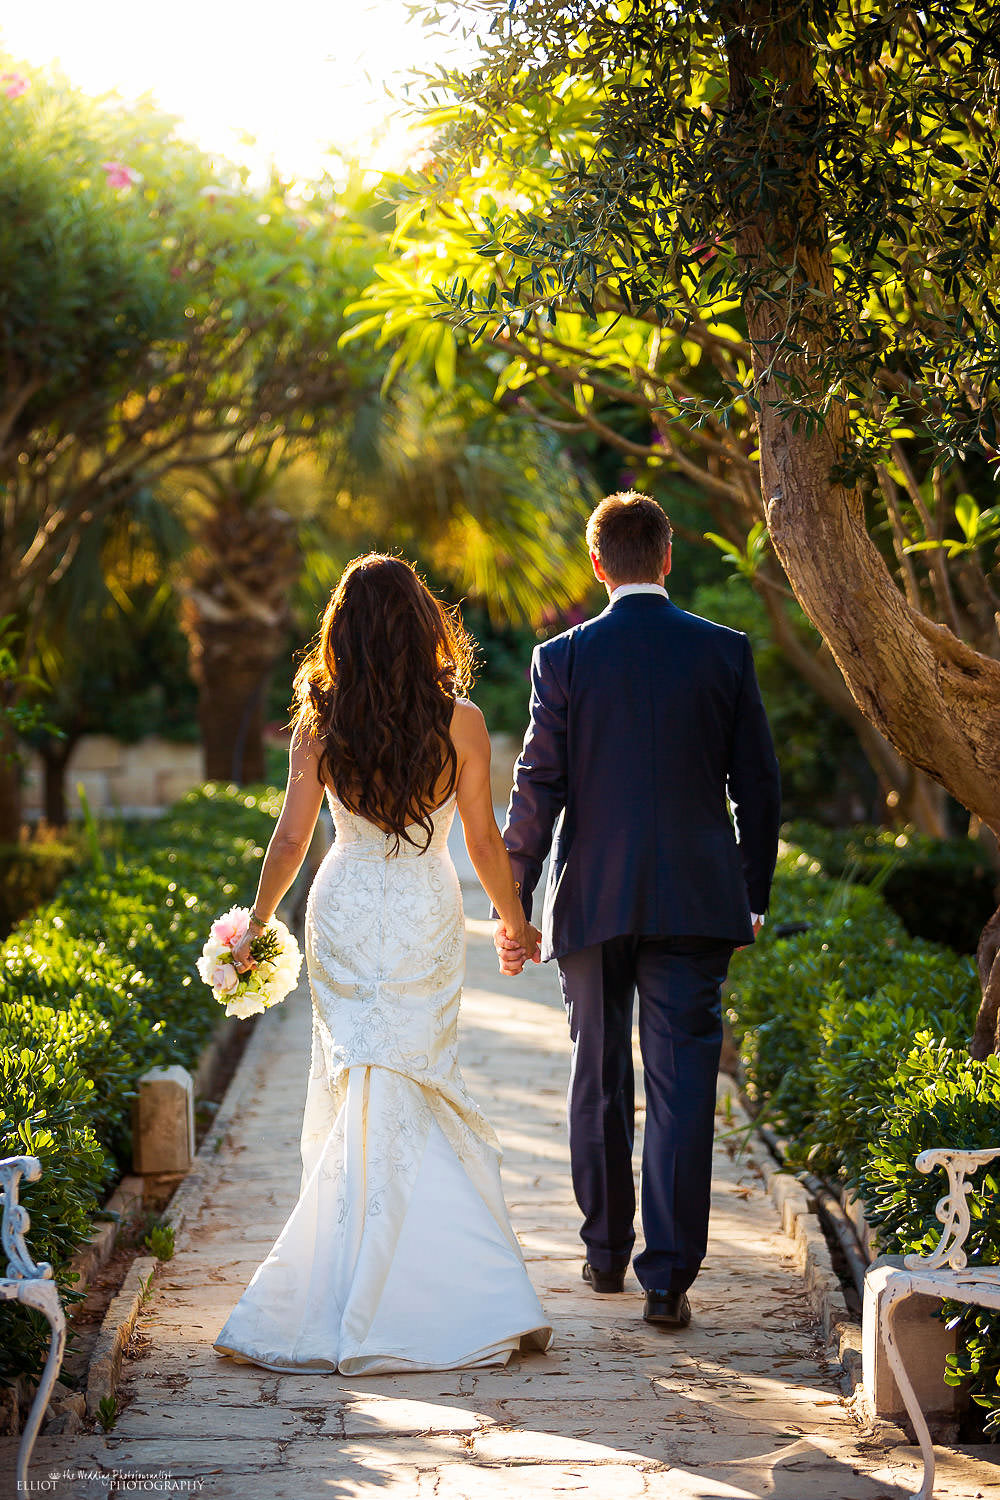 Bride and Groom walking through the gardens of the Palazzo Parisio in Malta. Photographer Elliot Nichol